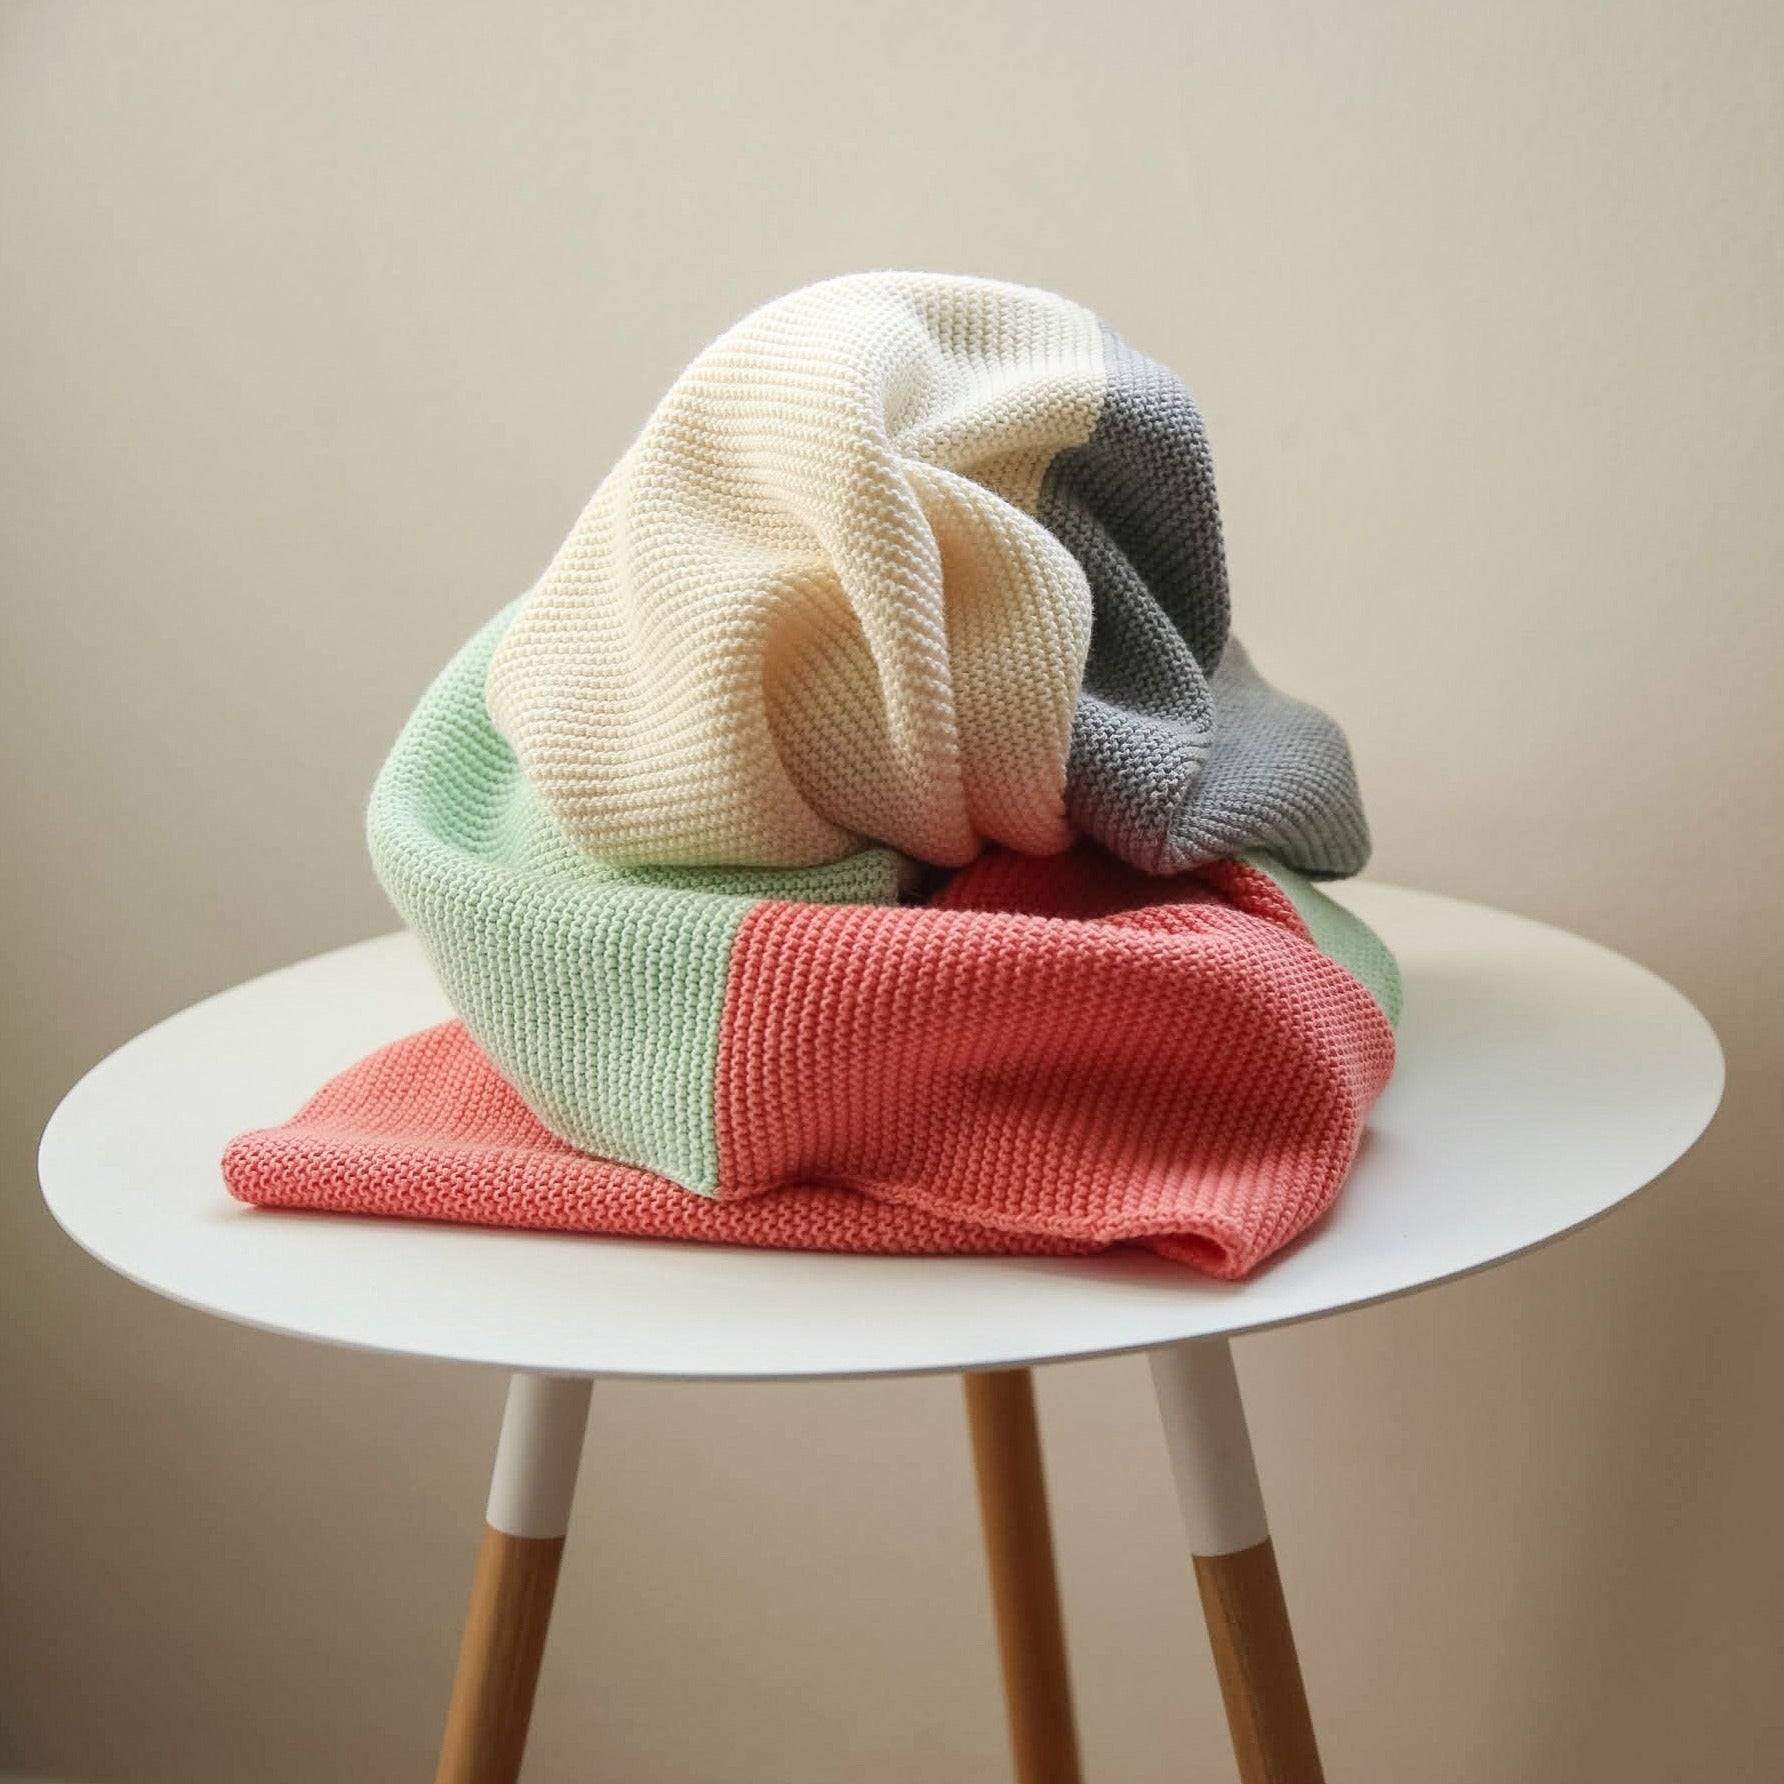 koko's nest | BLOC Cabot | 100% Egyptian Cotton | knit baby blanket